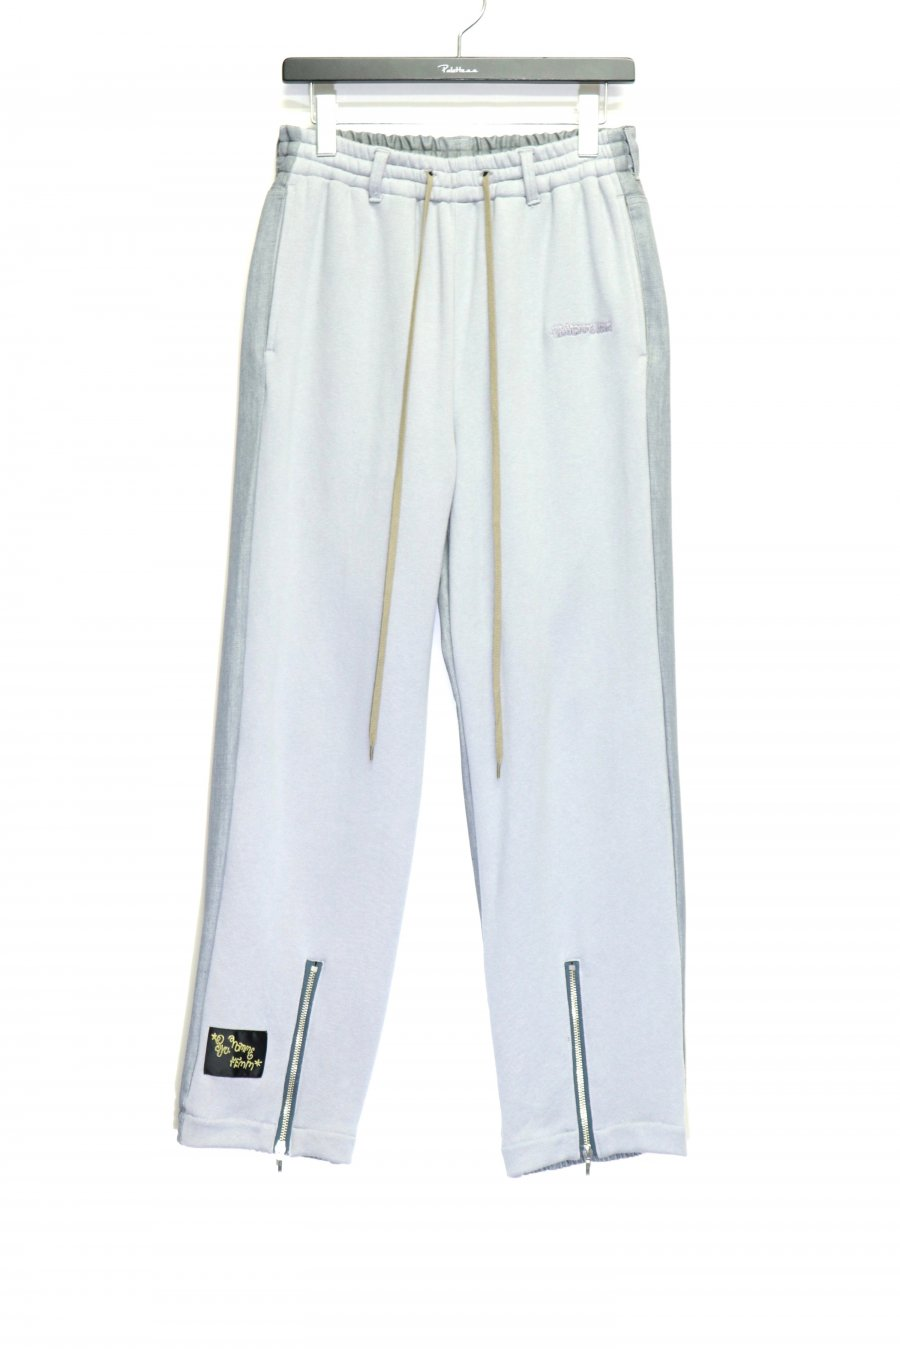 SYU.HOMME/FEMM  Docking Pants(GRAY)<img class='new_mark_img2' src='https://img.shop-pro.jp/img/new/icons15.gif' style='border:none;display:inline;margin:0px;padding:0px;width:auto;' />